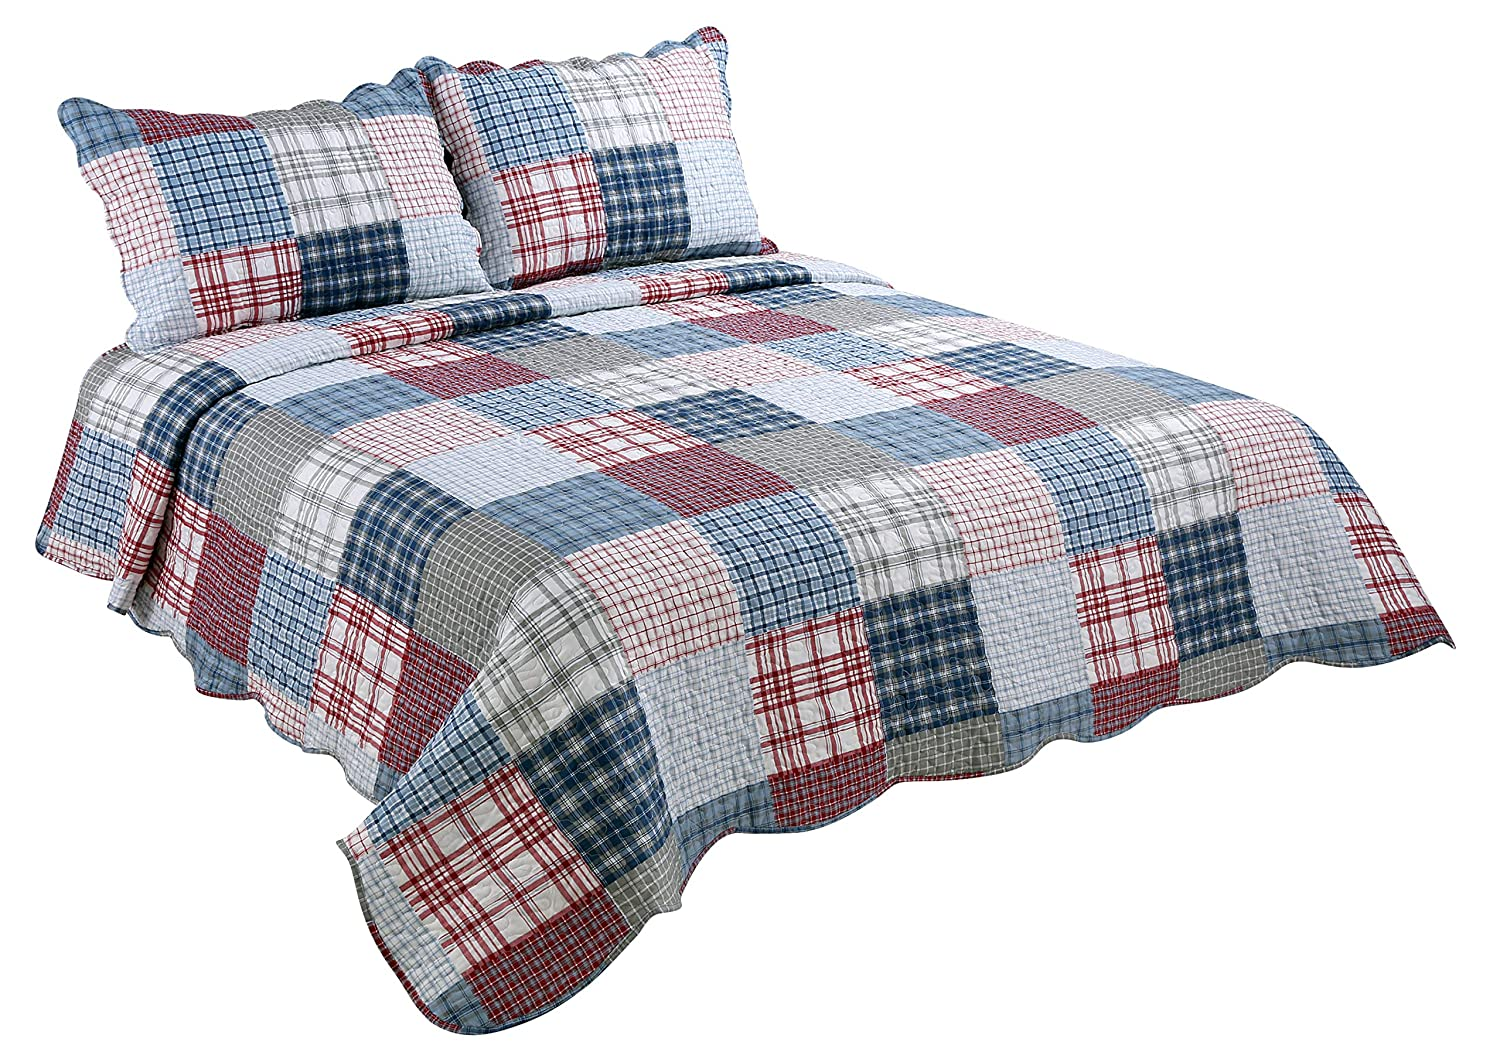 Marina Decoration Rich Printed 3 Pieces Luxury Quilt Set with 2 Quilted Shams, Multi Colors Plaid, Blue, Red, Gray and White Color, King Size